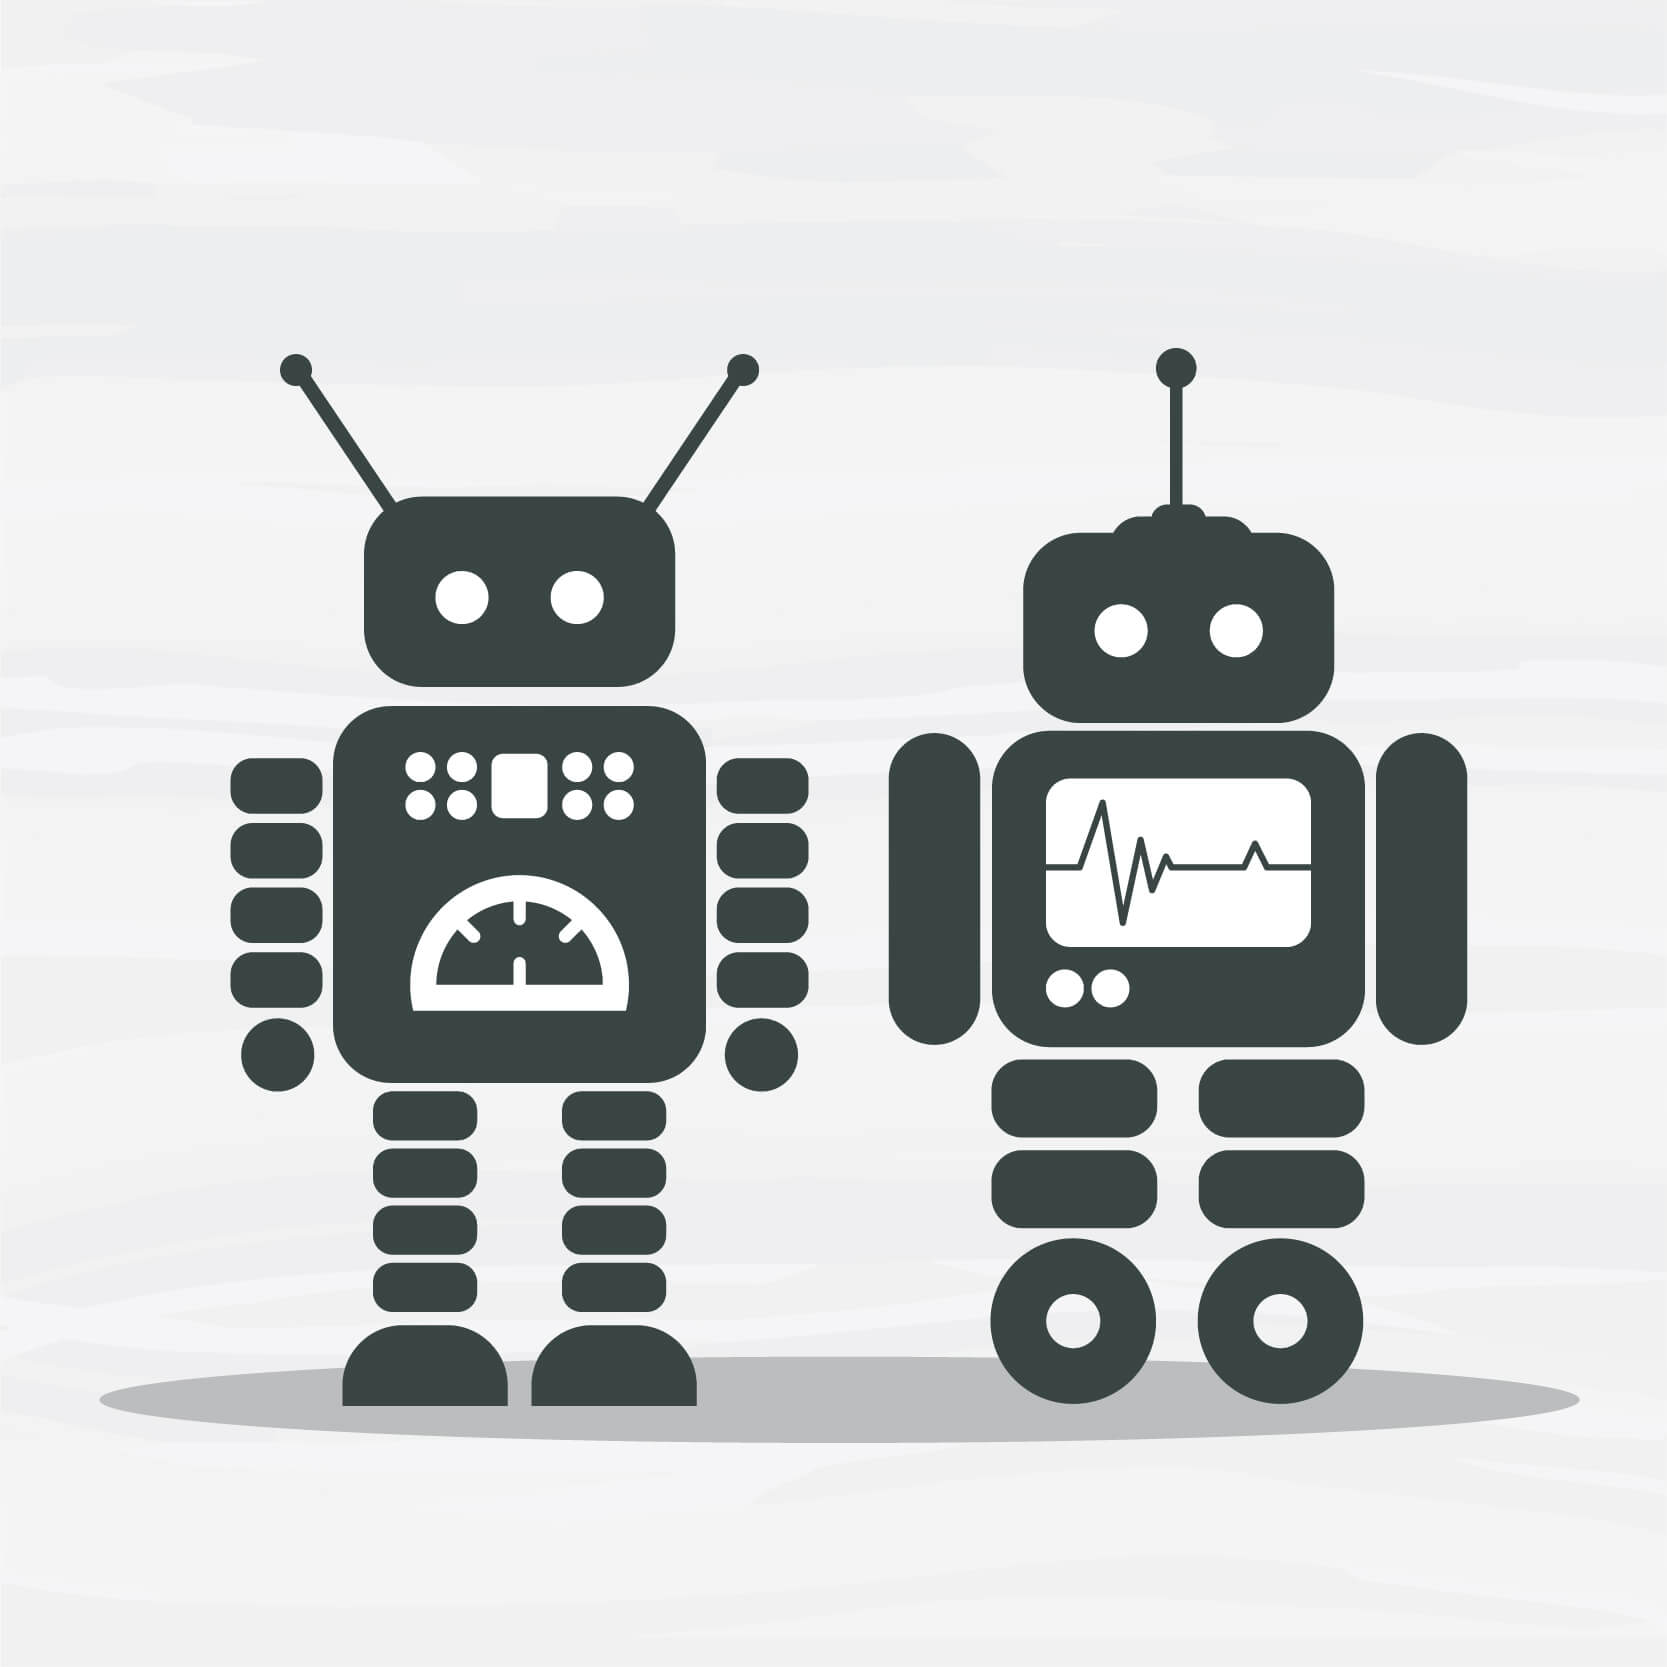 Chatbots have sparked a lot of interest in last few years due to the growth in artificial intelligence and its applicati…